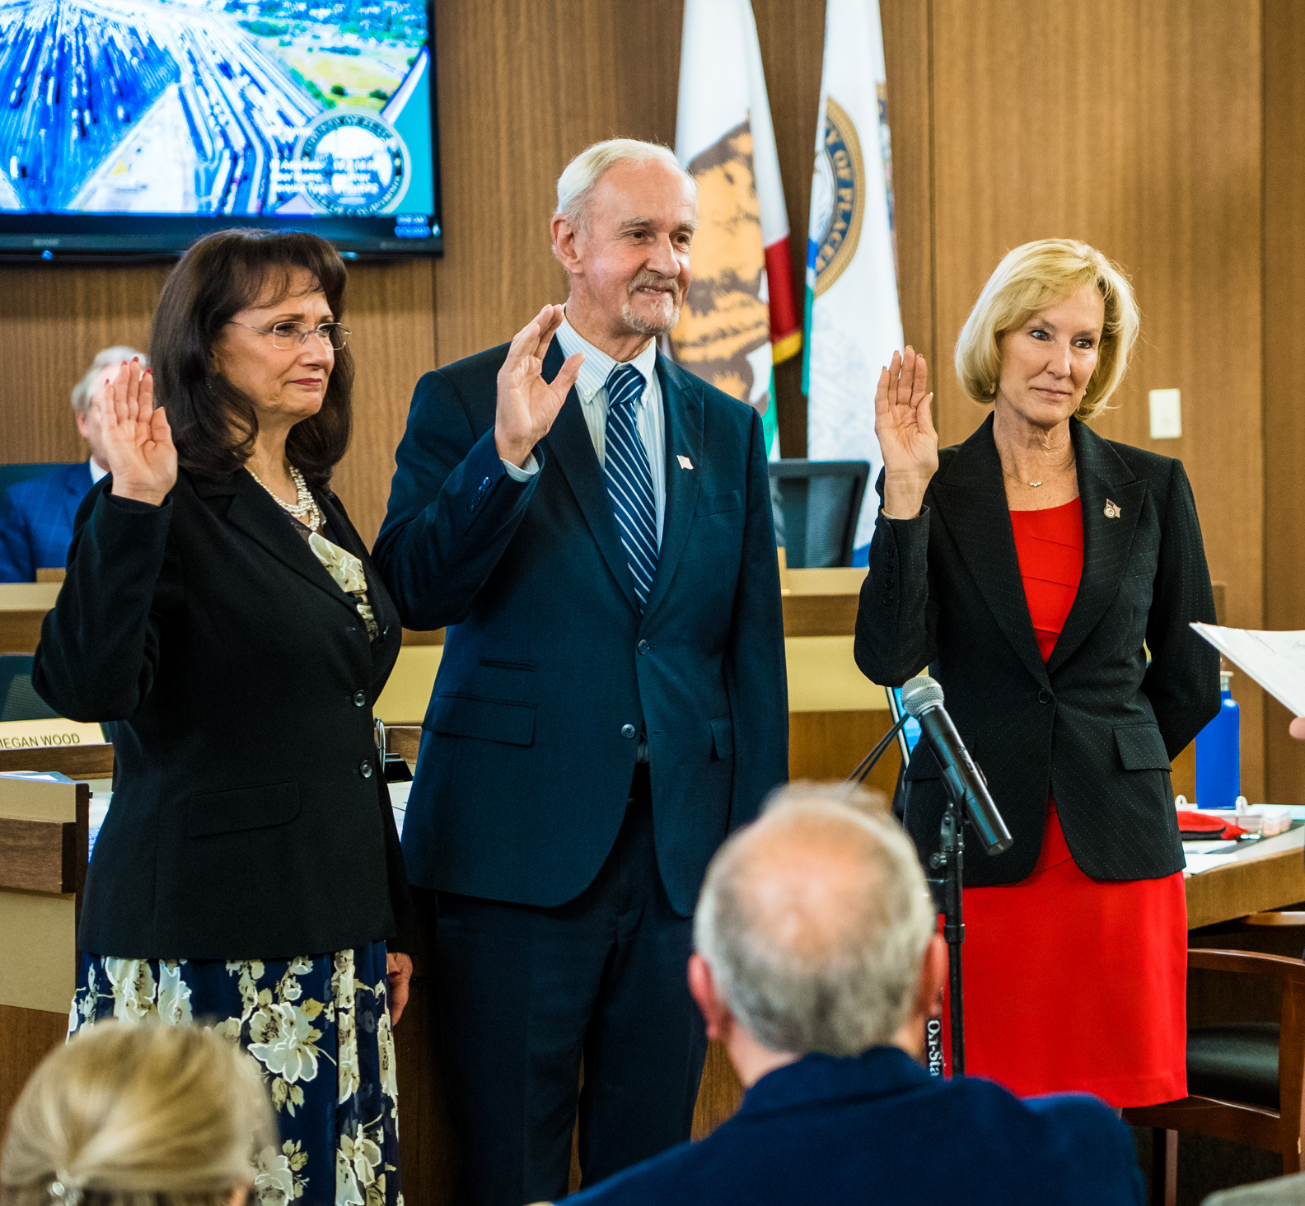 Board of Supervisors Swearing-in Ceremony News Flash Jan. 2021